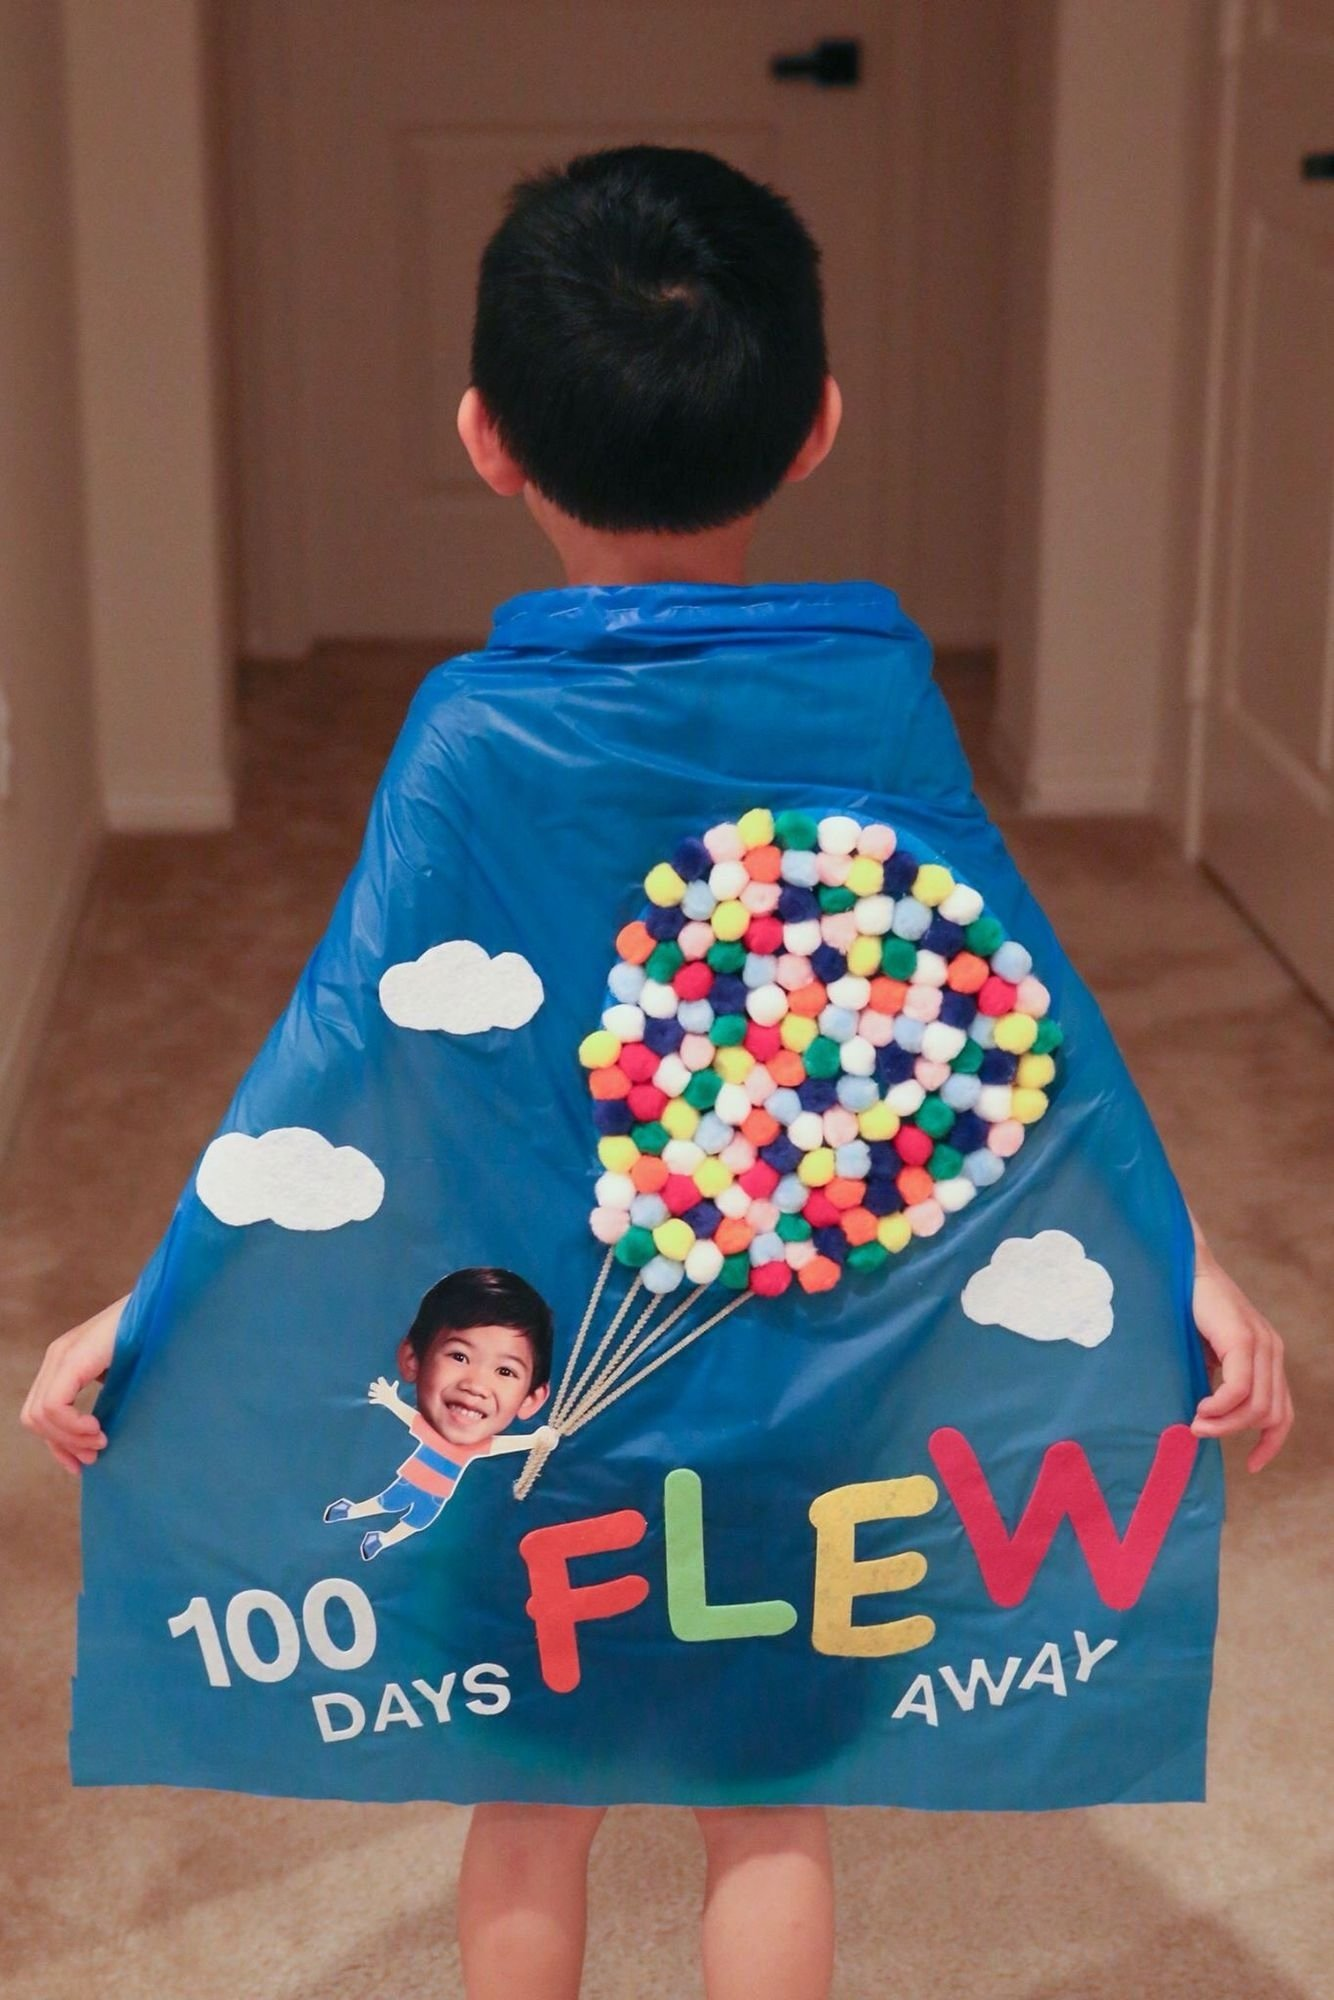 10 Fantastic 100 Days Of School Ideas from up up away 100 days of school cape made from pom poms 4 2020